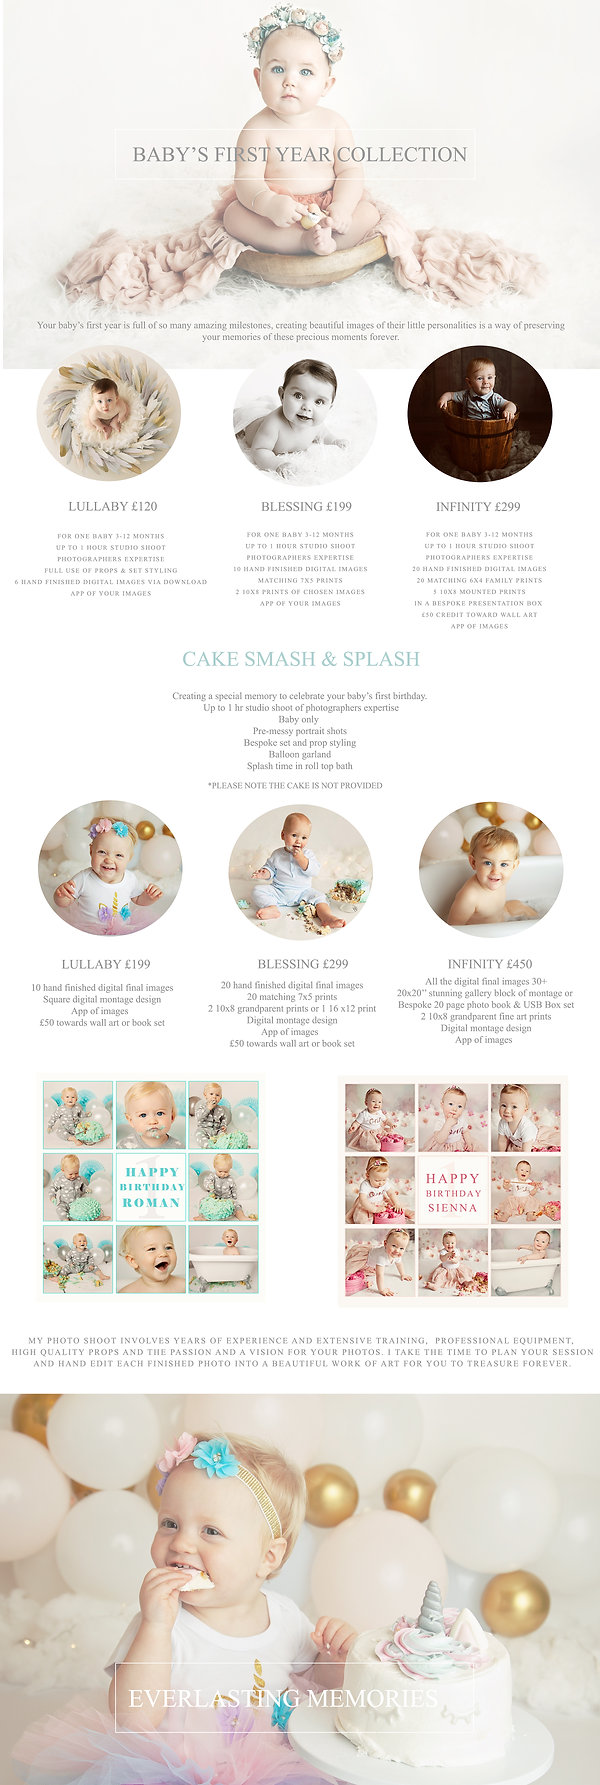 BABY'S 1ST YEAR COLLECTIONS-2021.jpg